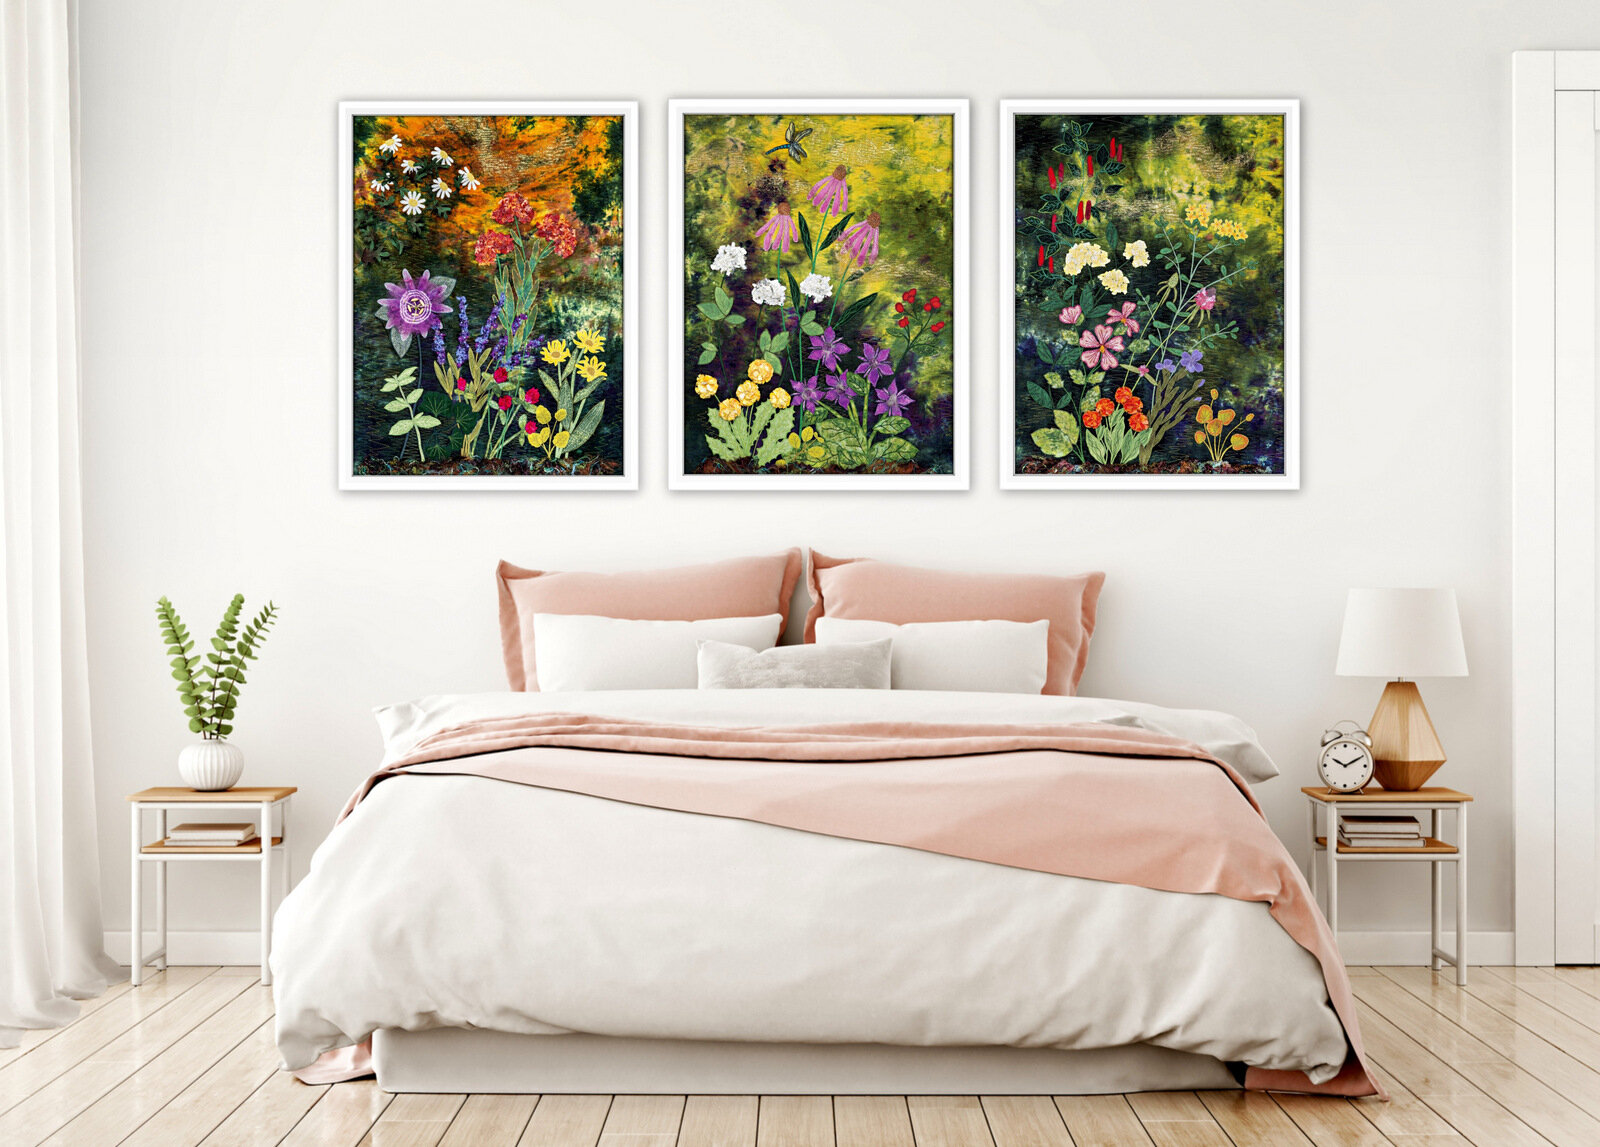 Healing Garden Art, Gallery & Gift Shop